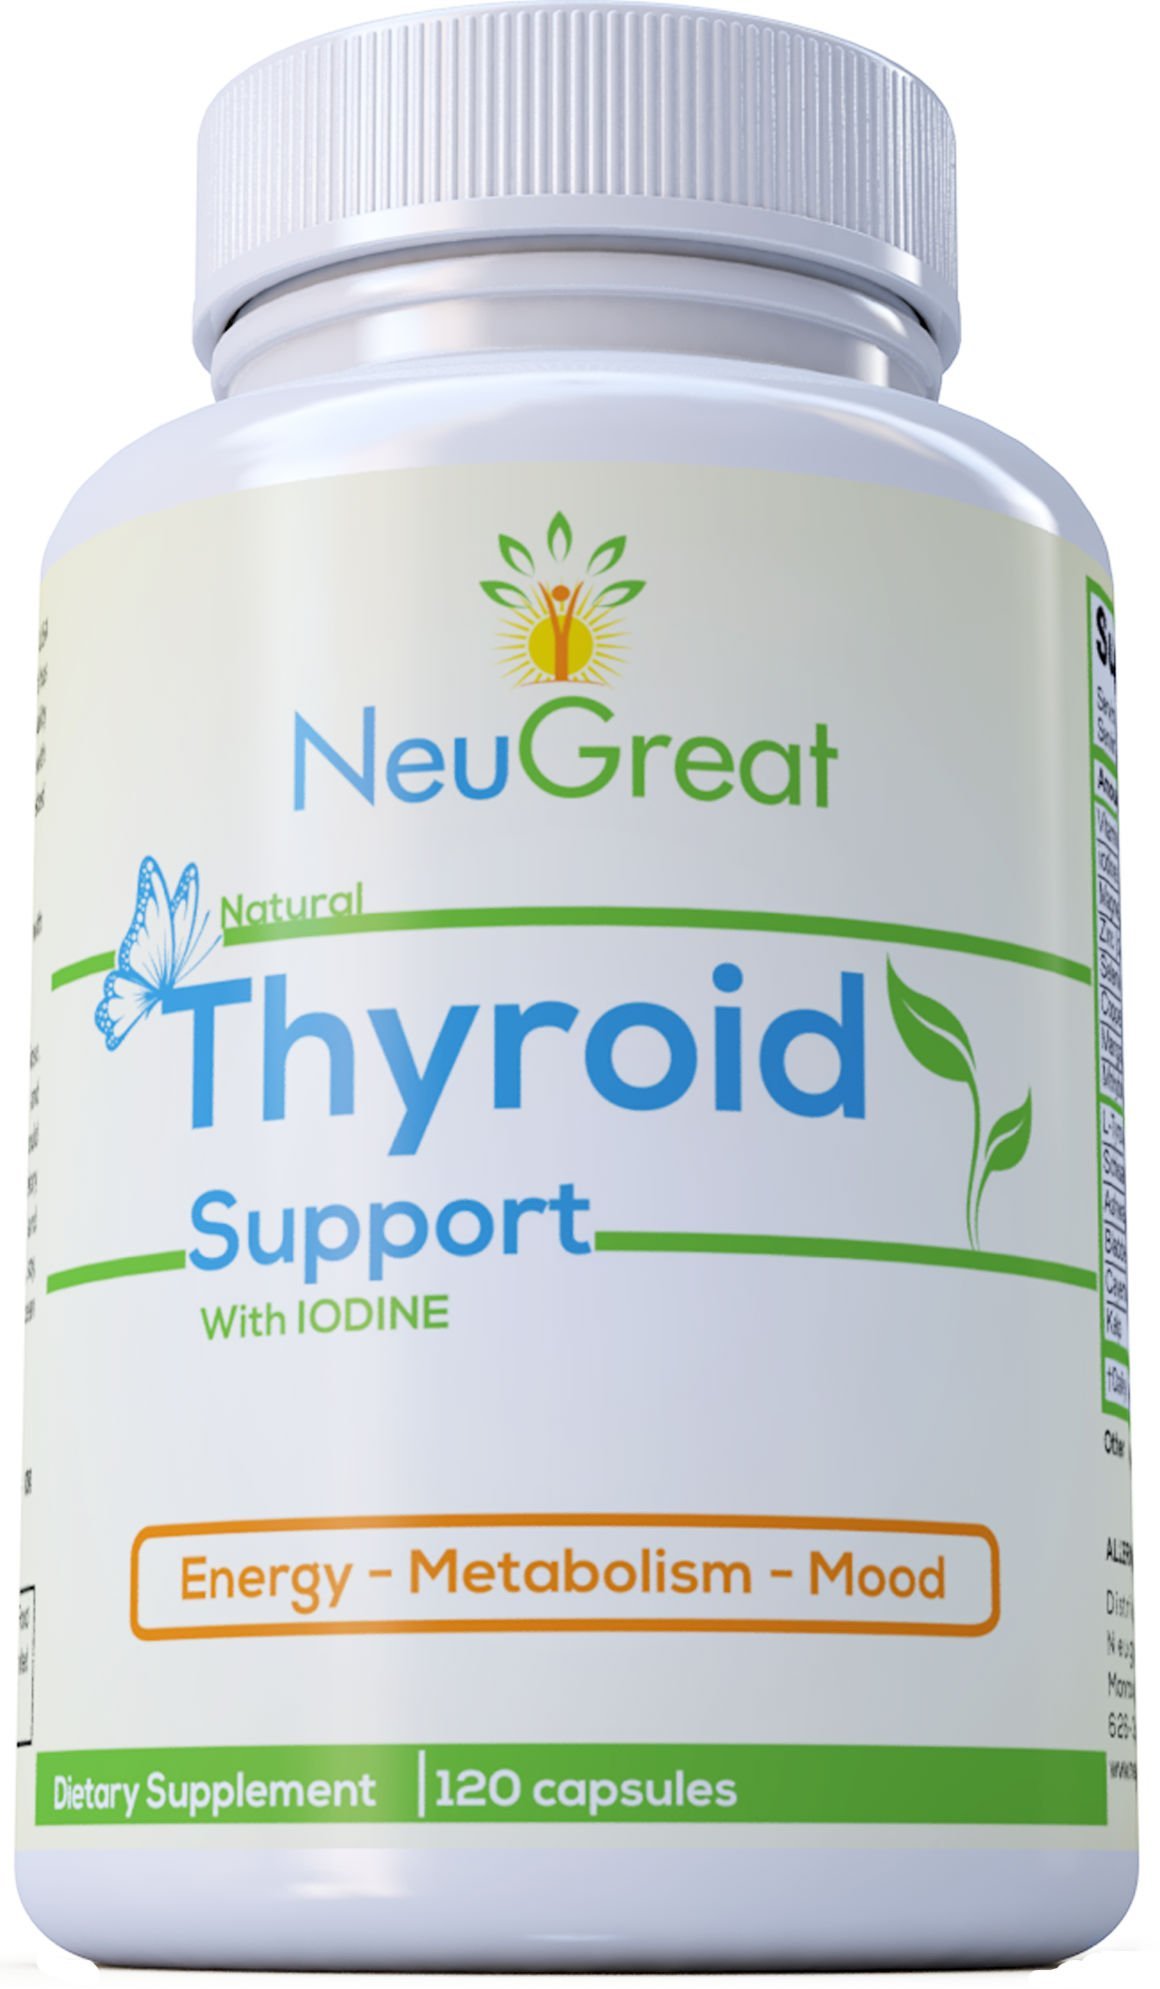 Thyroid Support Supplement with Iodine 120 Capsules, 100% MONEY BACK GUARANTEE, Vitamin B12, Zinc, Ashwagandha - Energy, Metabolism, Mood & Weight loss Formula, MADE IN USA by Neugreat